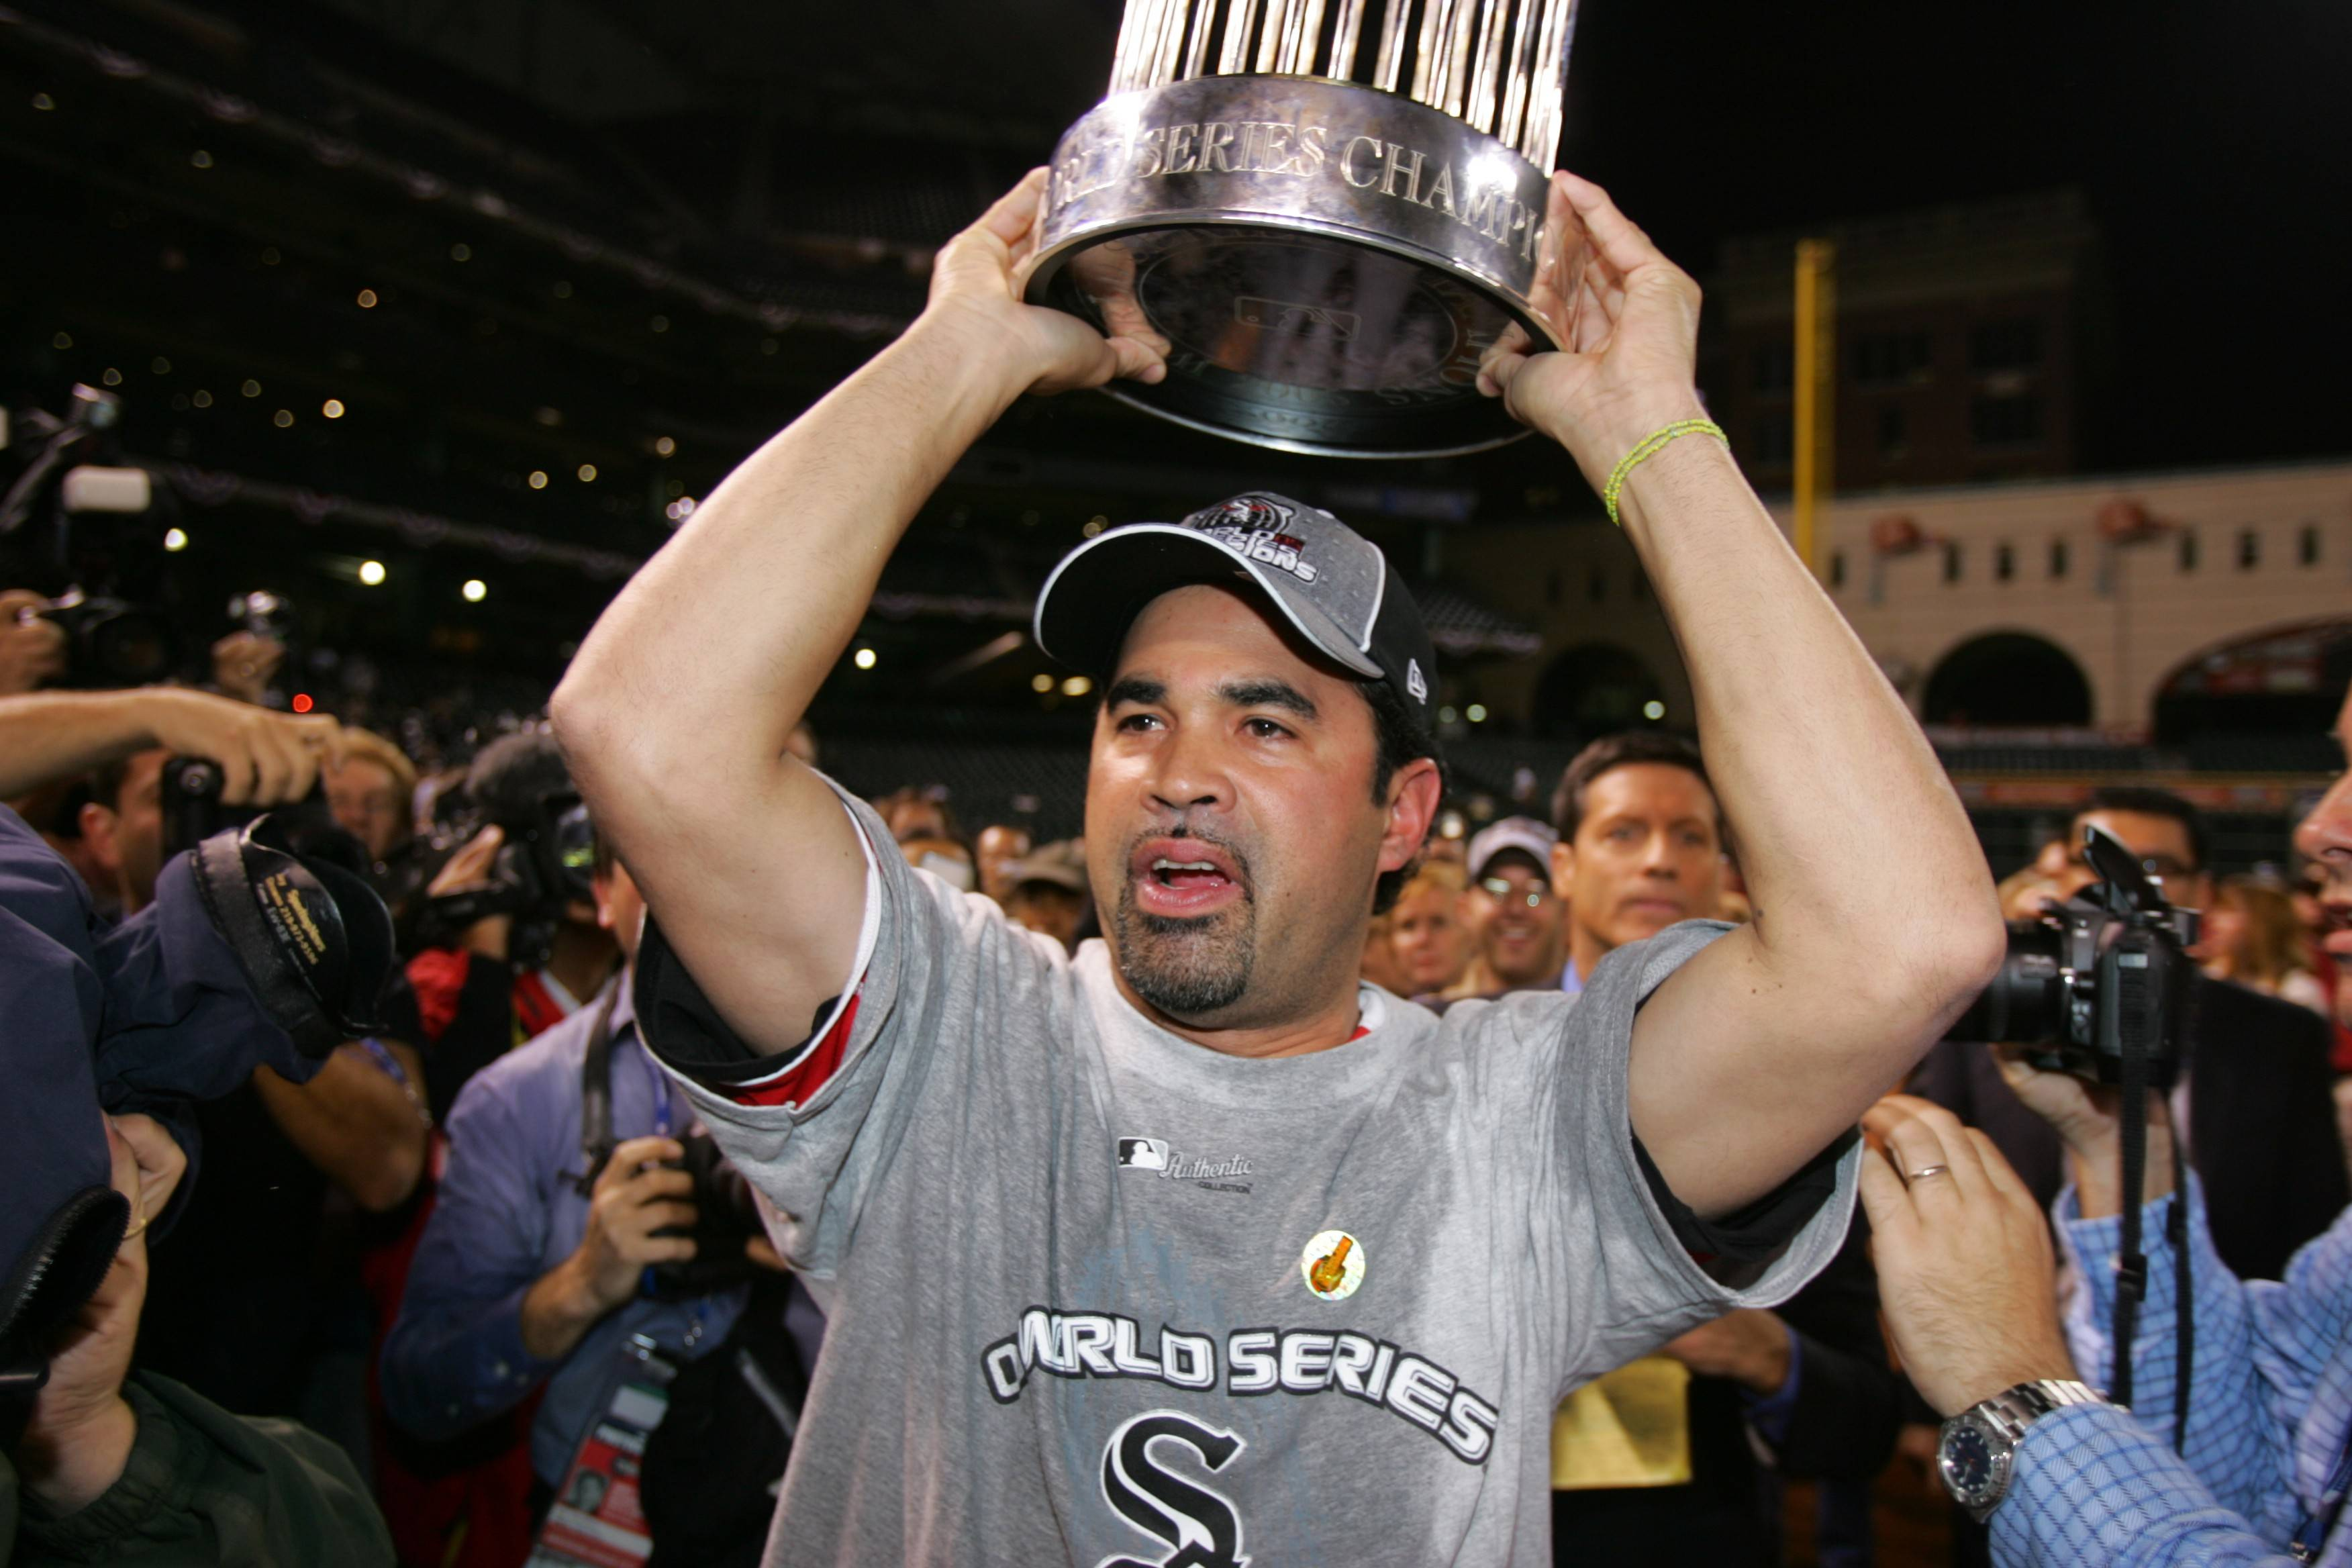 Former Chicago White Sox player and manager Ozzie Guillen will sign autographs and meet with fans at the Fanatics Authentic Sports Spectacular event in Rosemont.